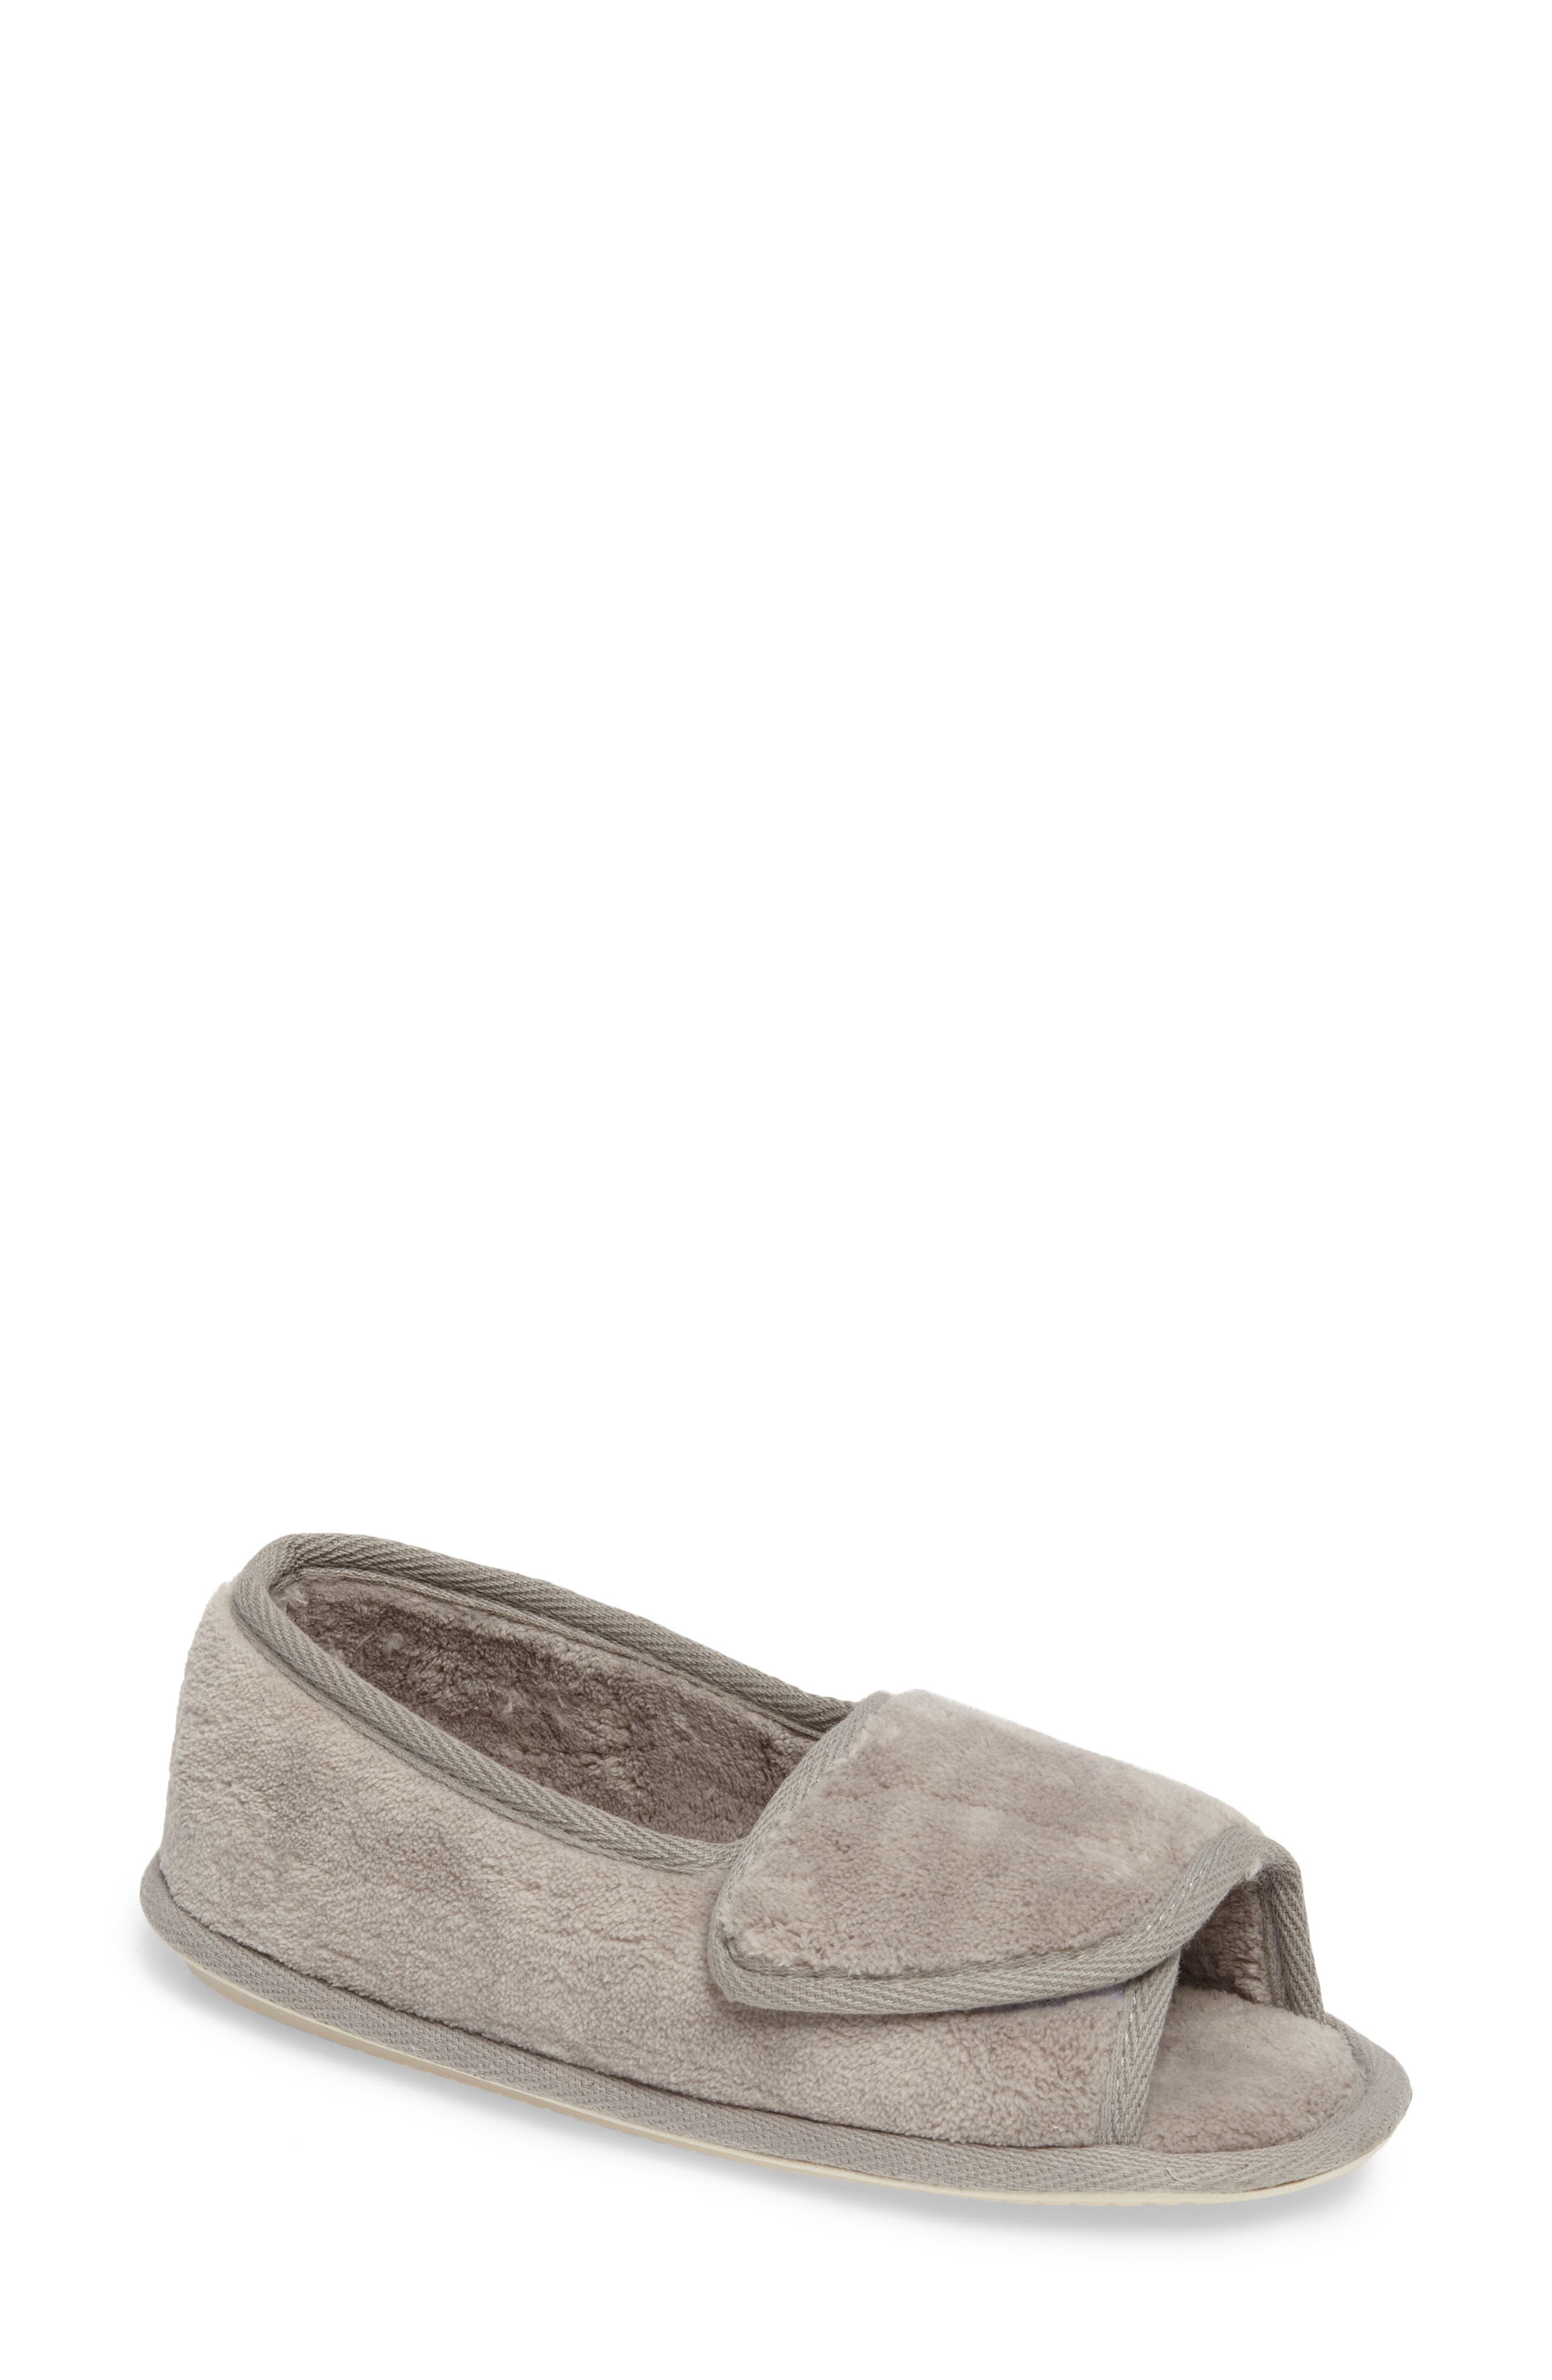 Tara II Slipper,                             Main thumbnail 1, color,                             GRAY FABRIC